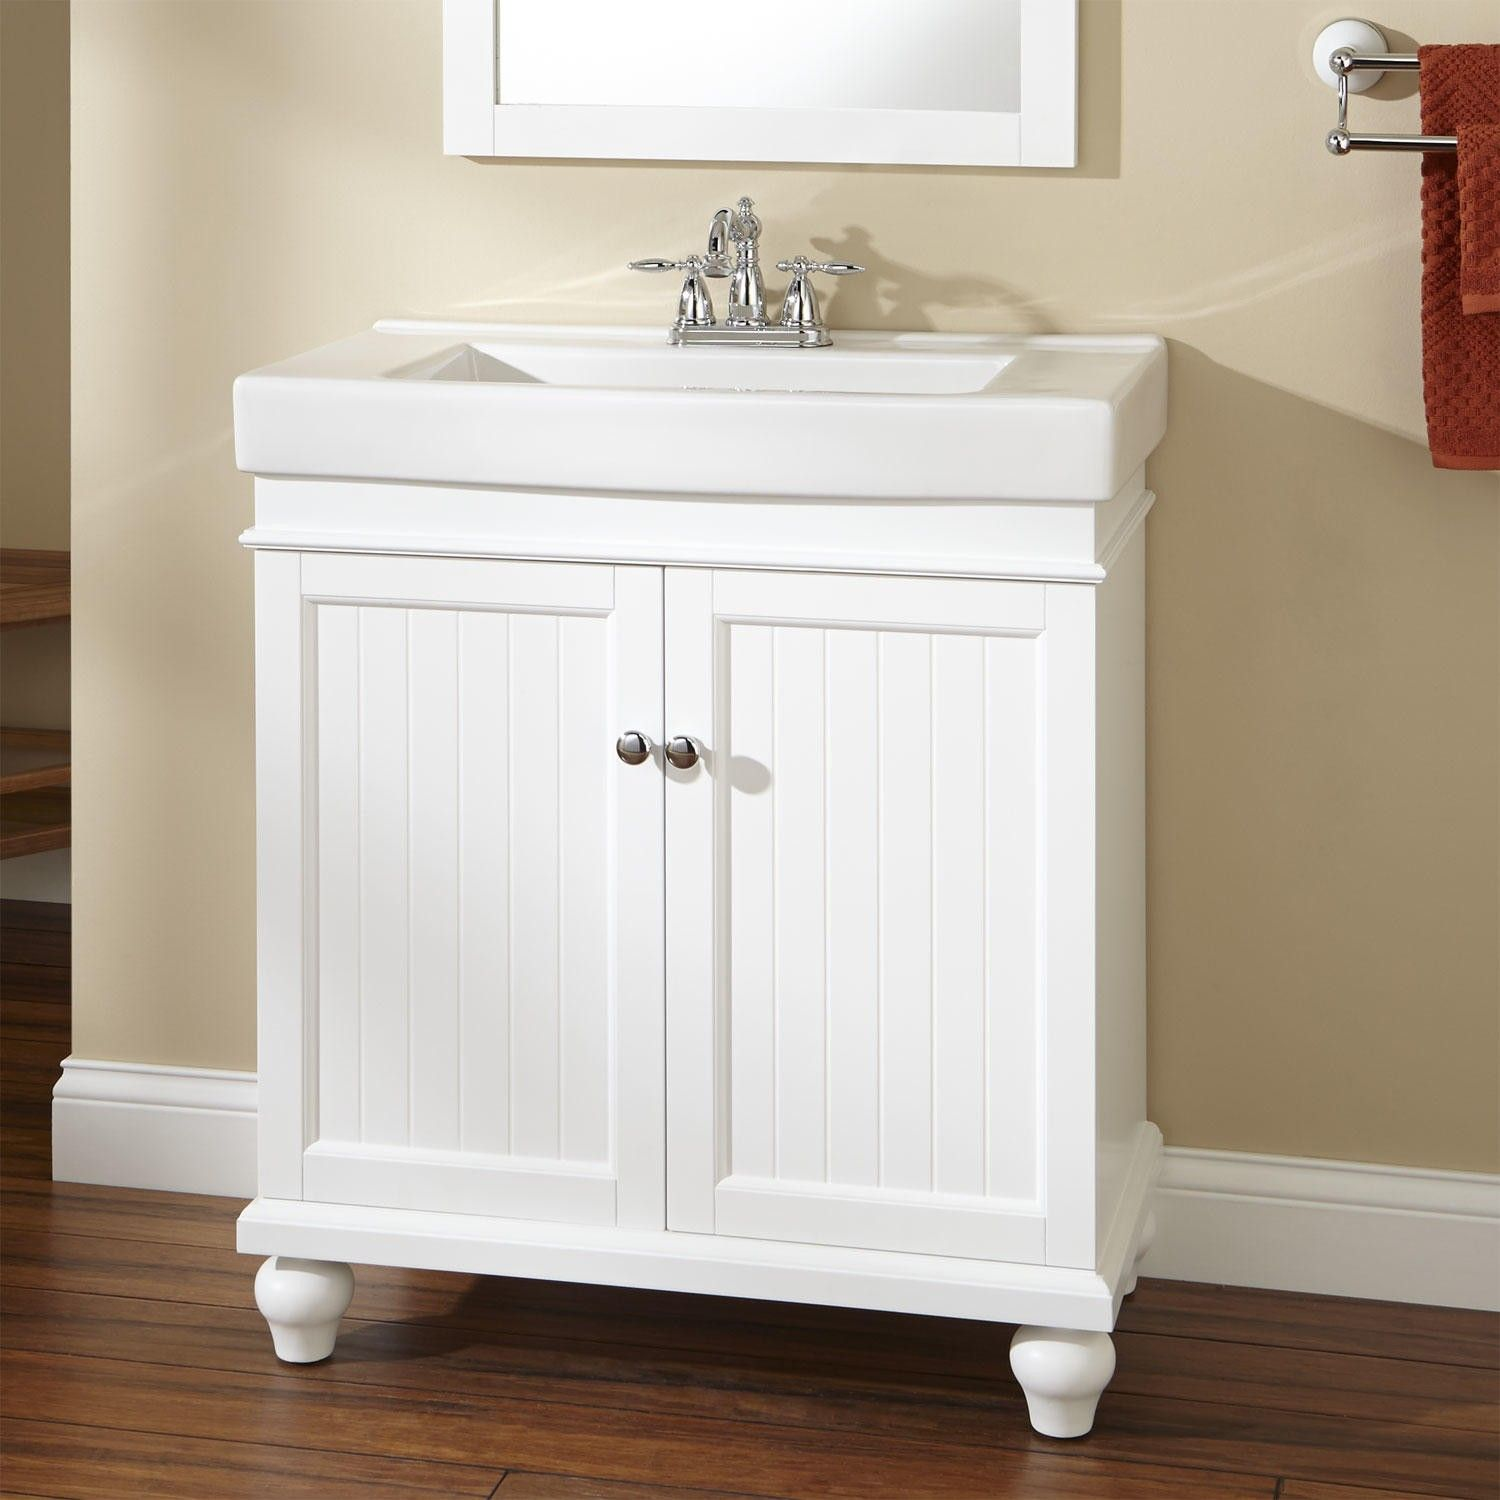 Innovative 16 Inch Bathroom Vanity Design Ideas